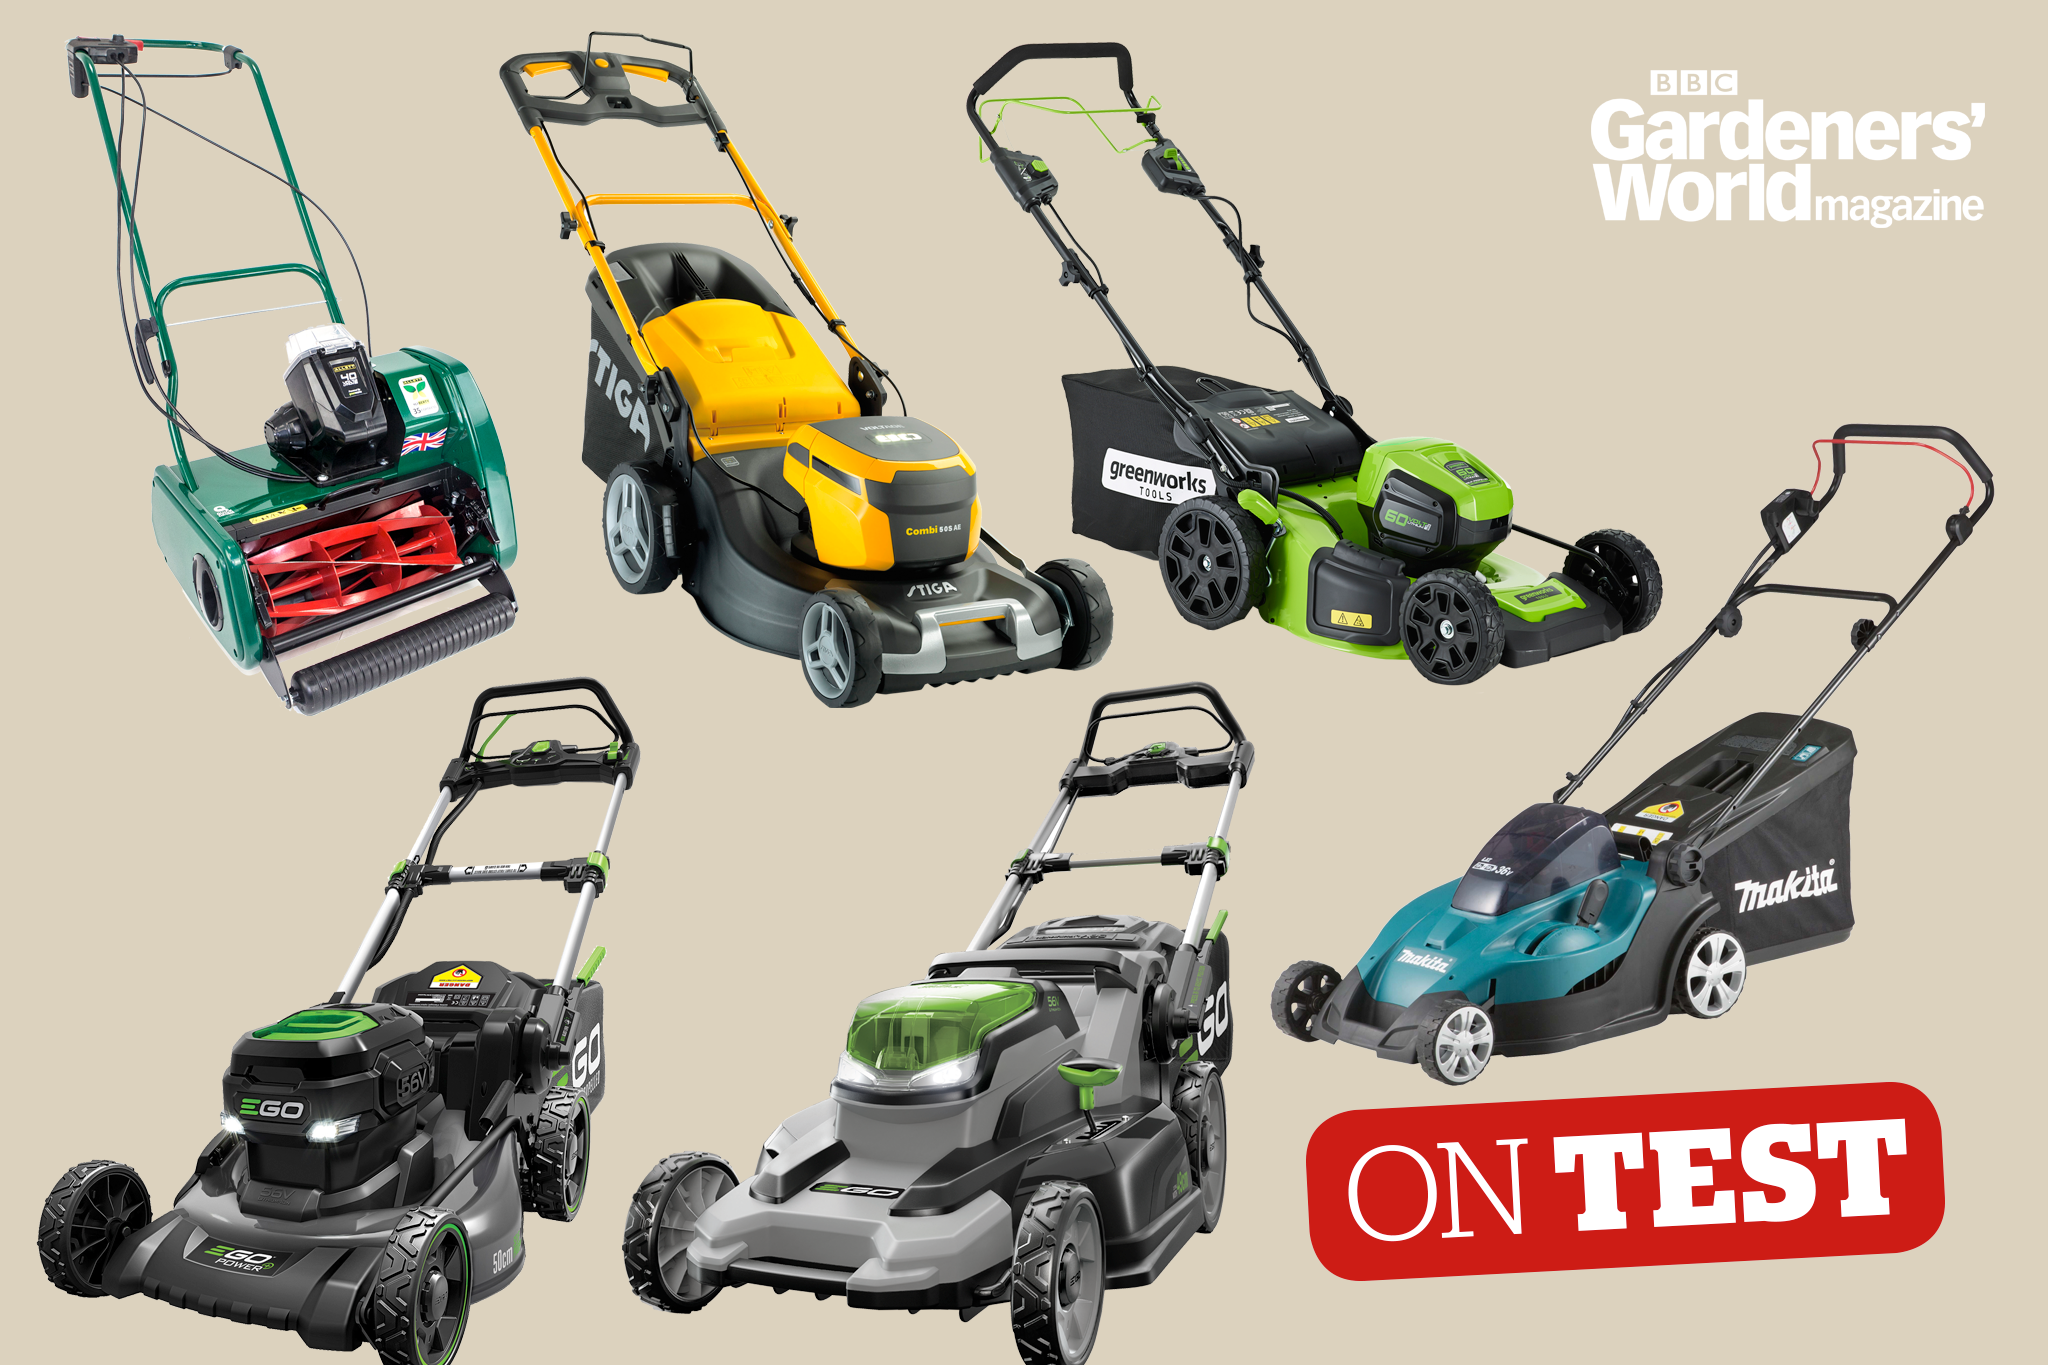 On Test - Cordless mowers (large lawns)